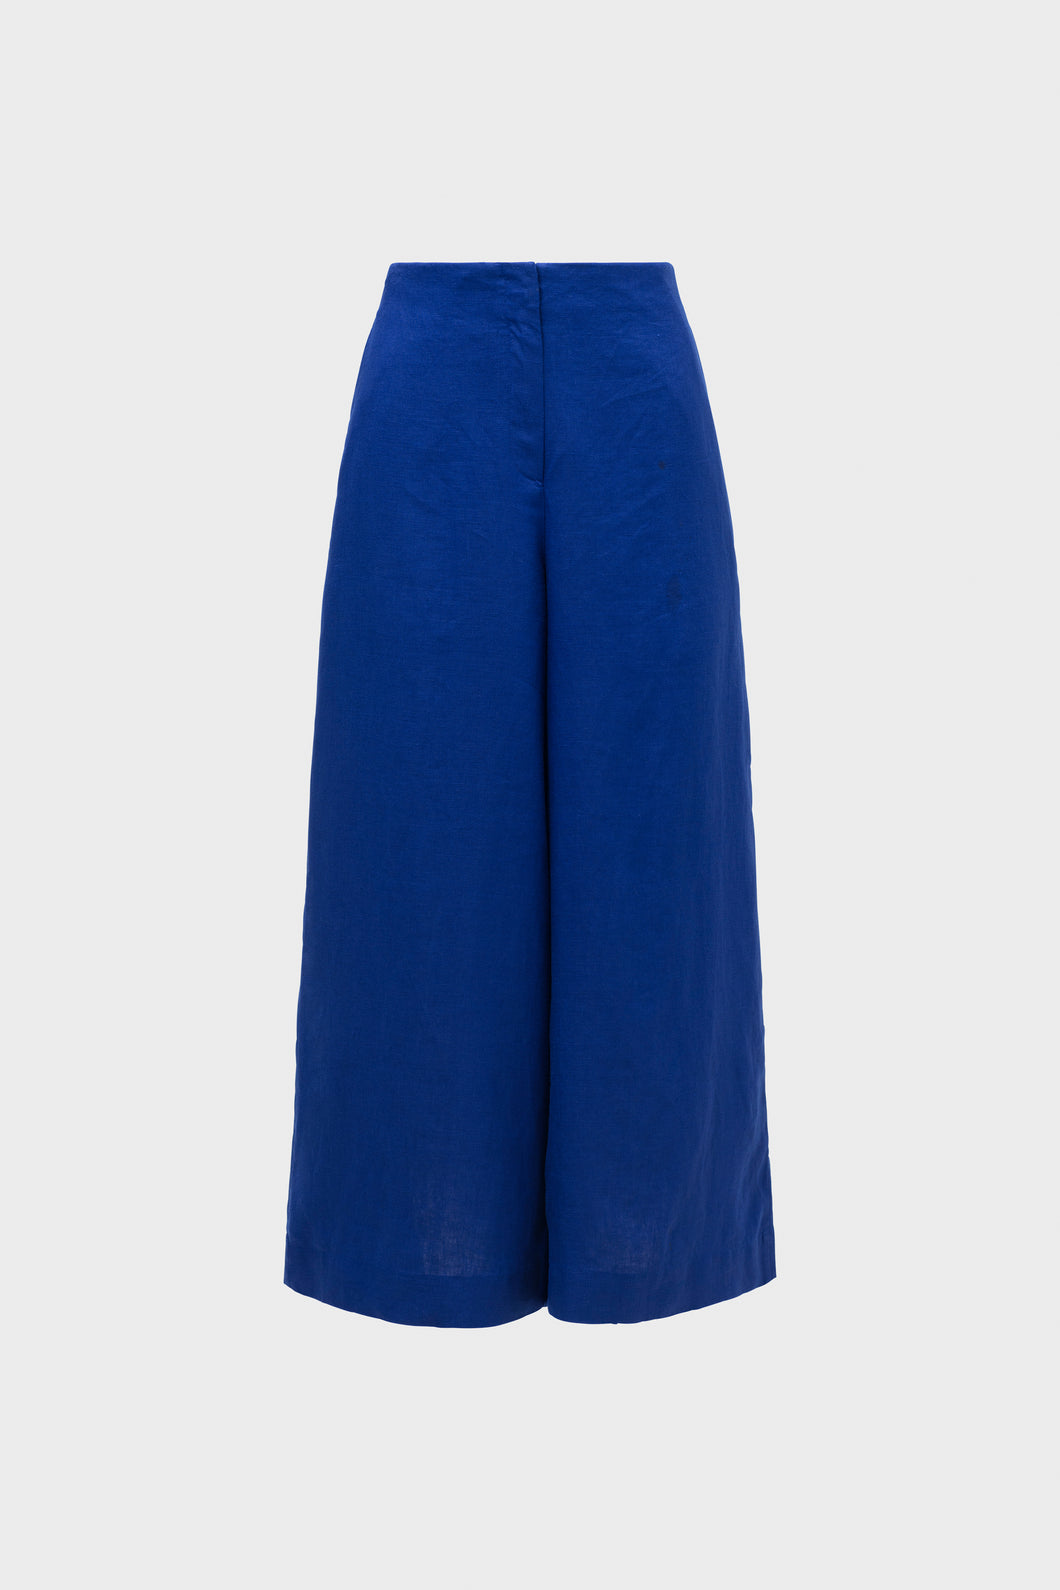 ELK THE LABEL Hallvi Wide Leg Pant | Cobalt One Country Mouse Yamba